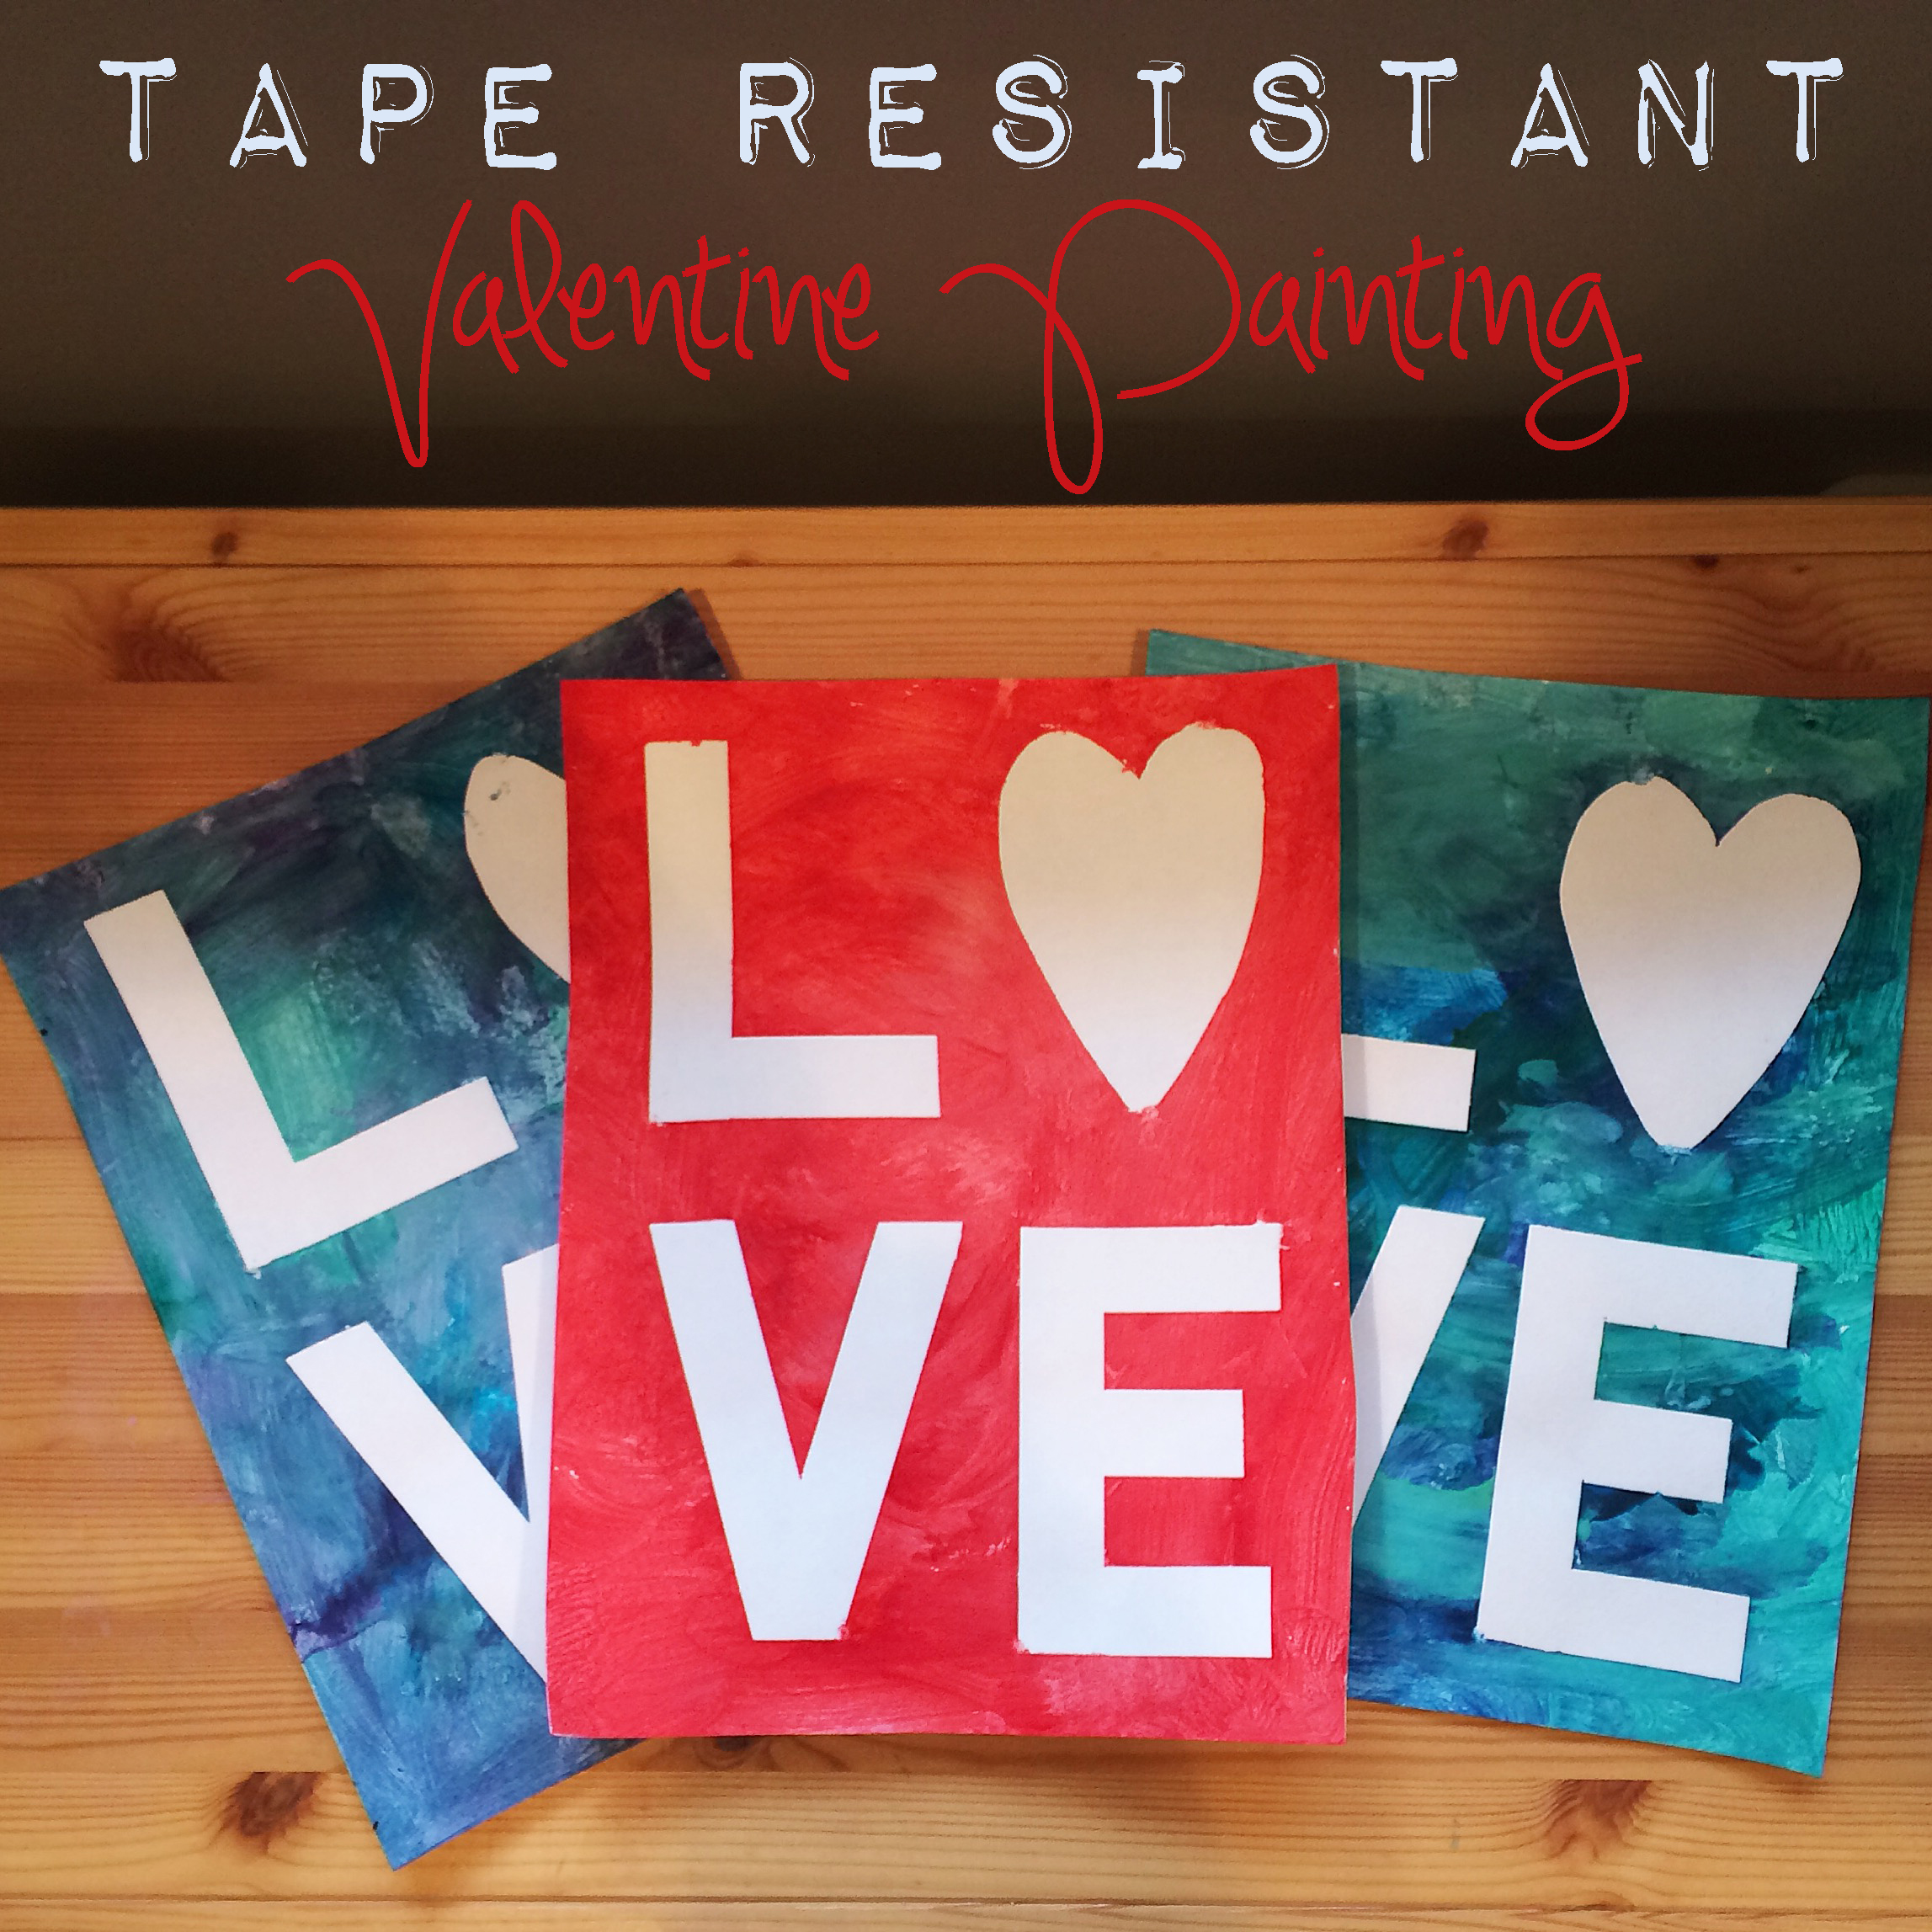 Tape Resistant Valentine Painting Projects In Parenting